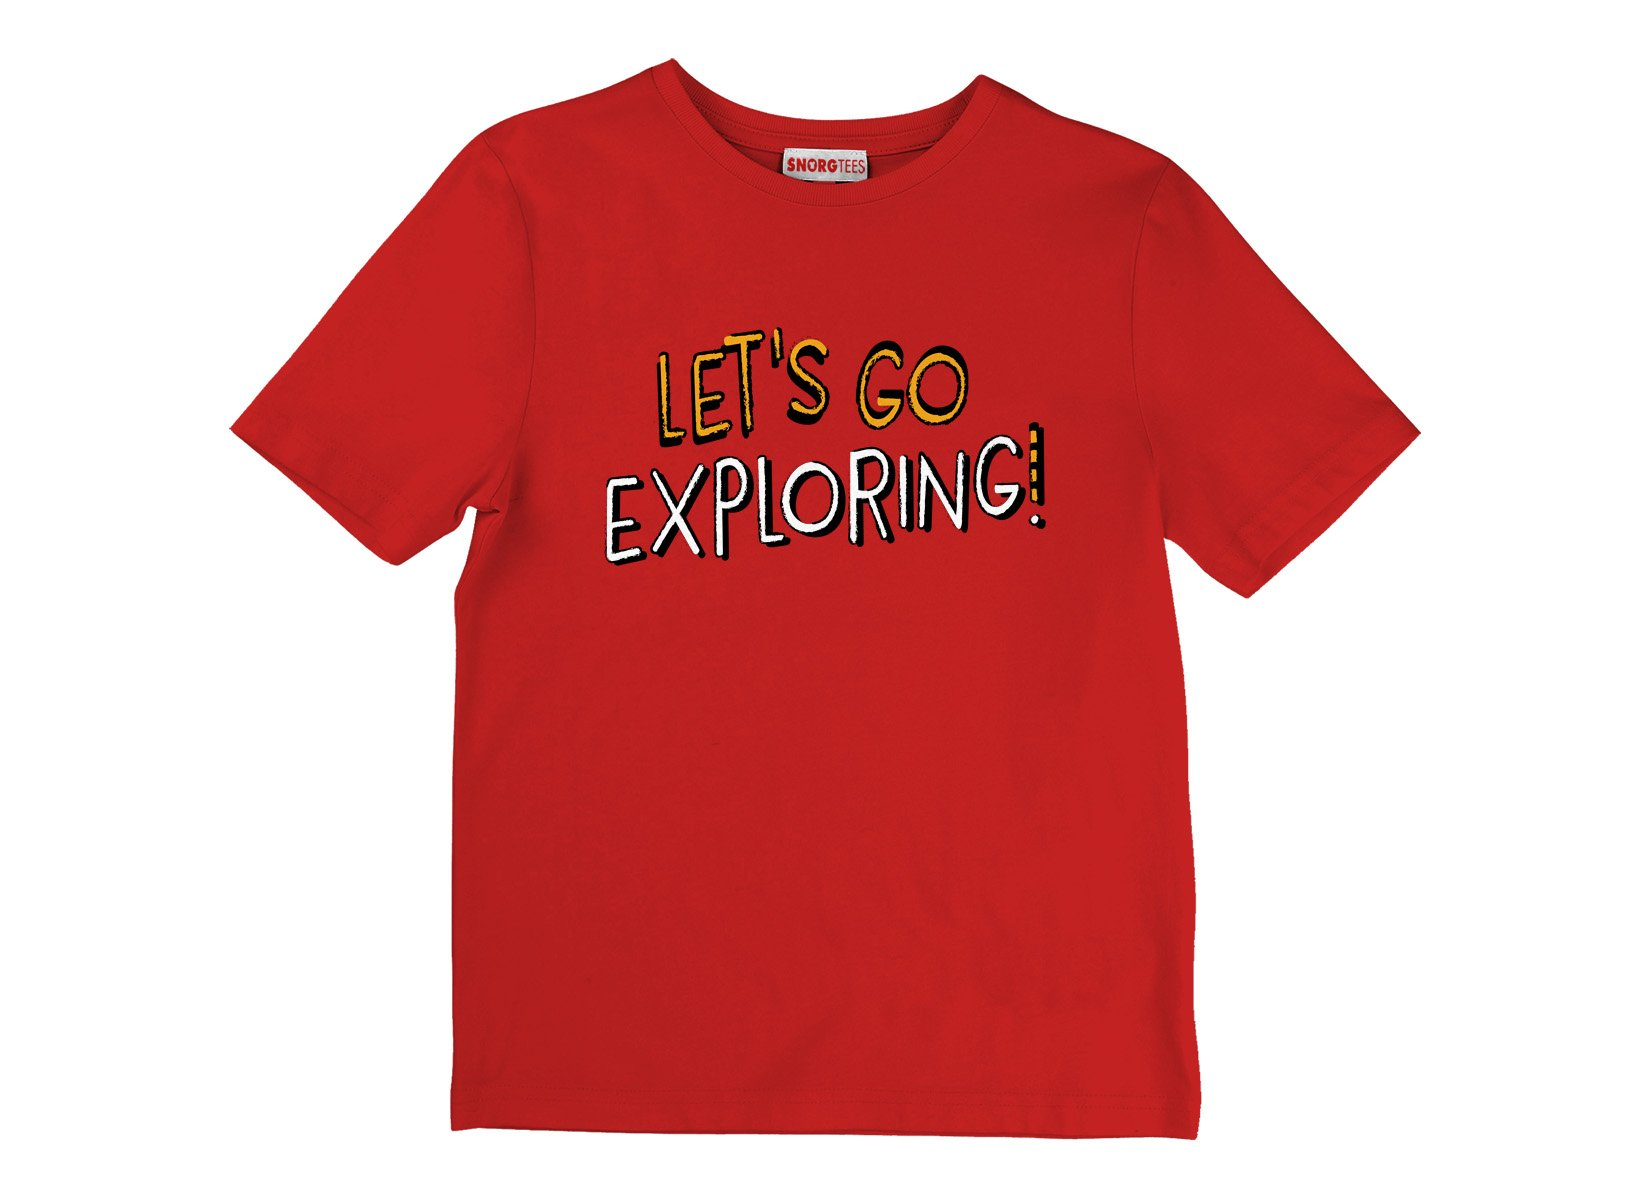 Let's Go Exploring! on Kids T-Shirt